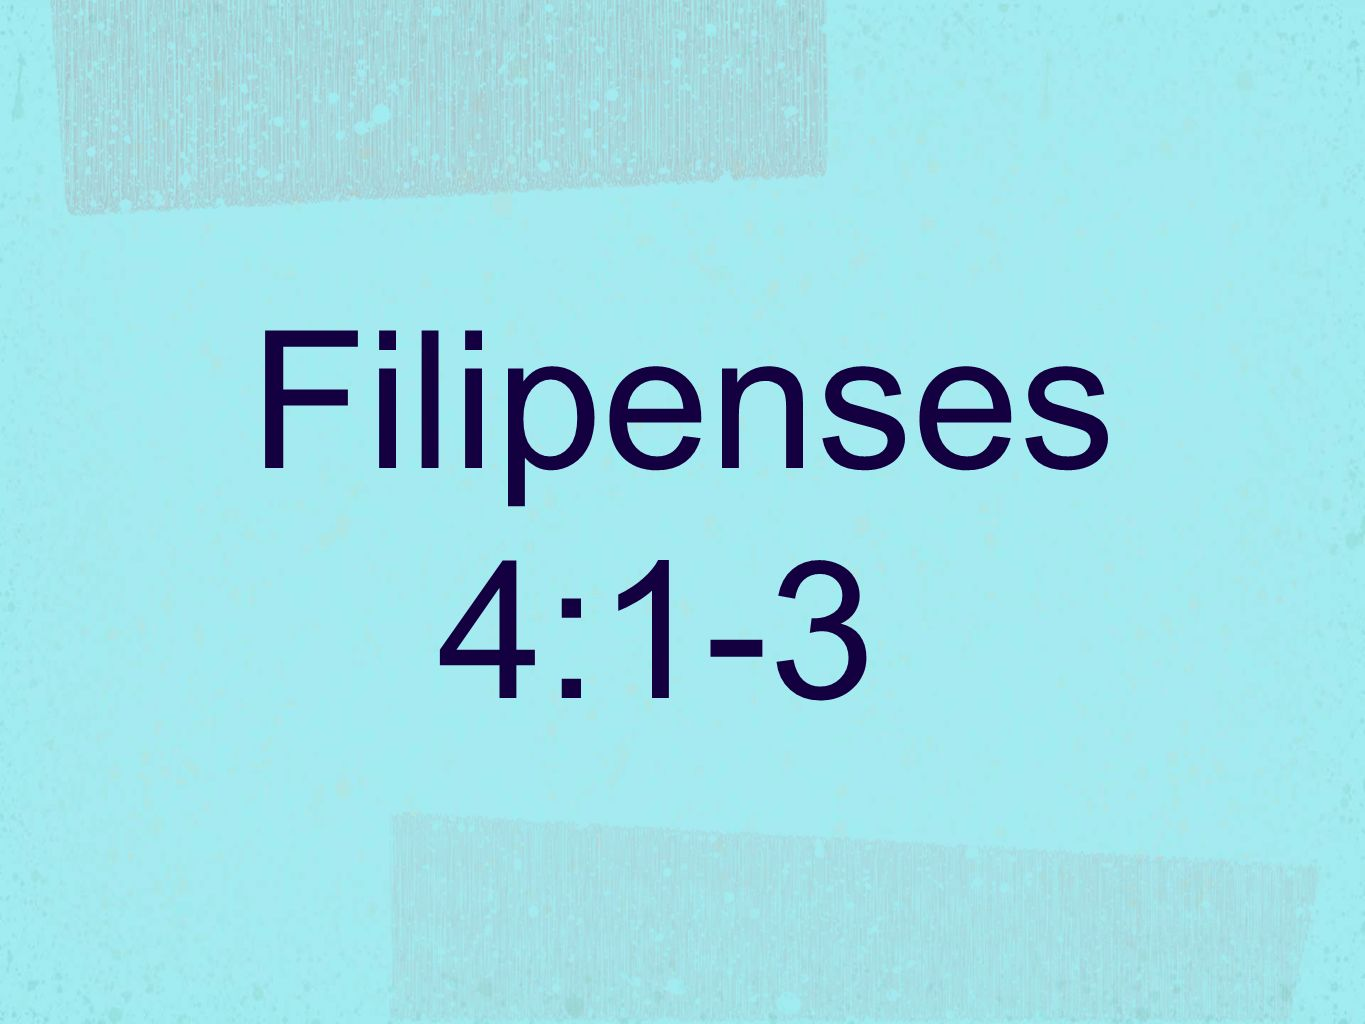 Filipenses 4:1-3